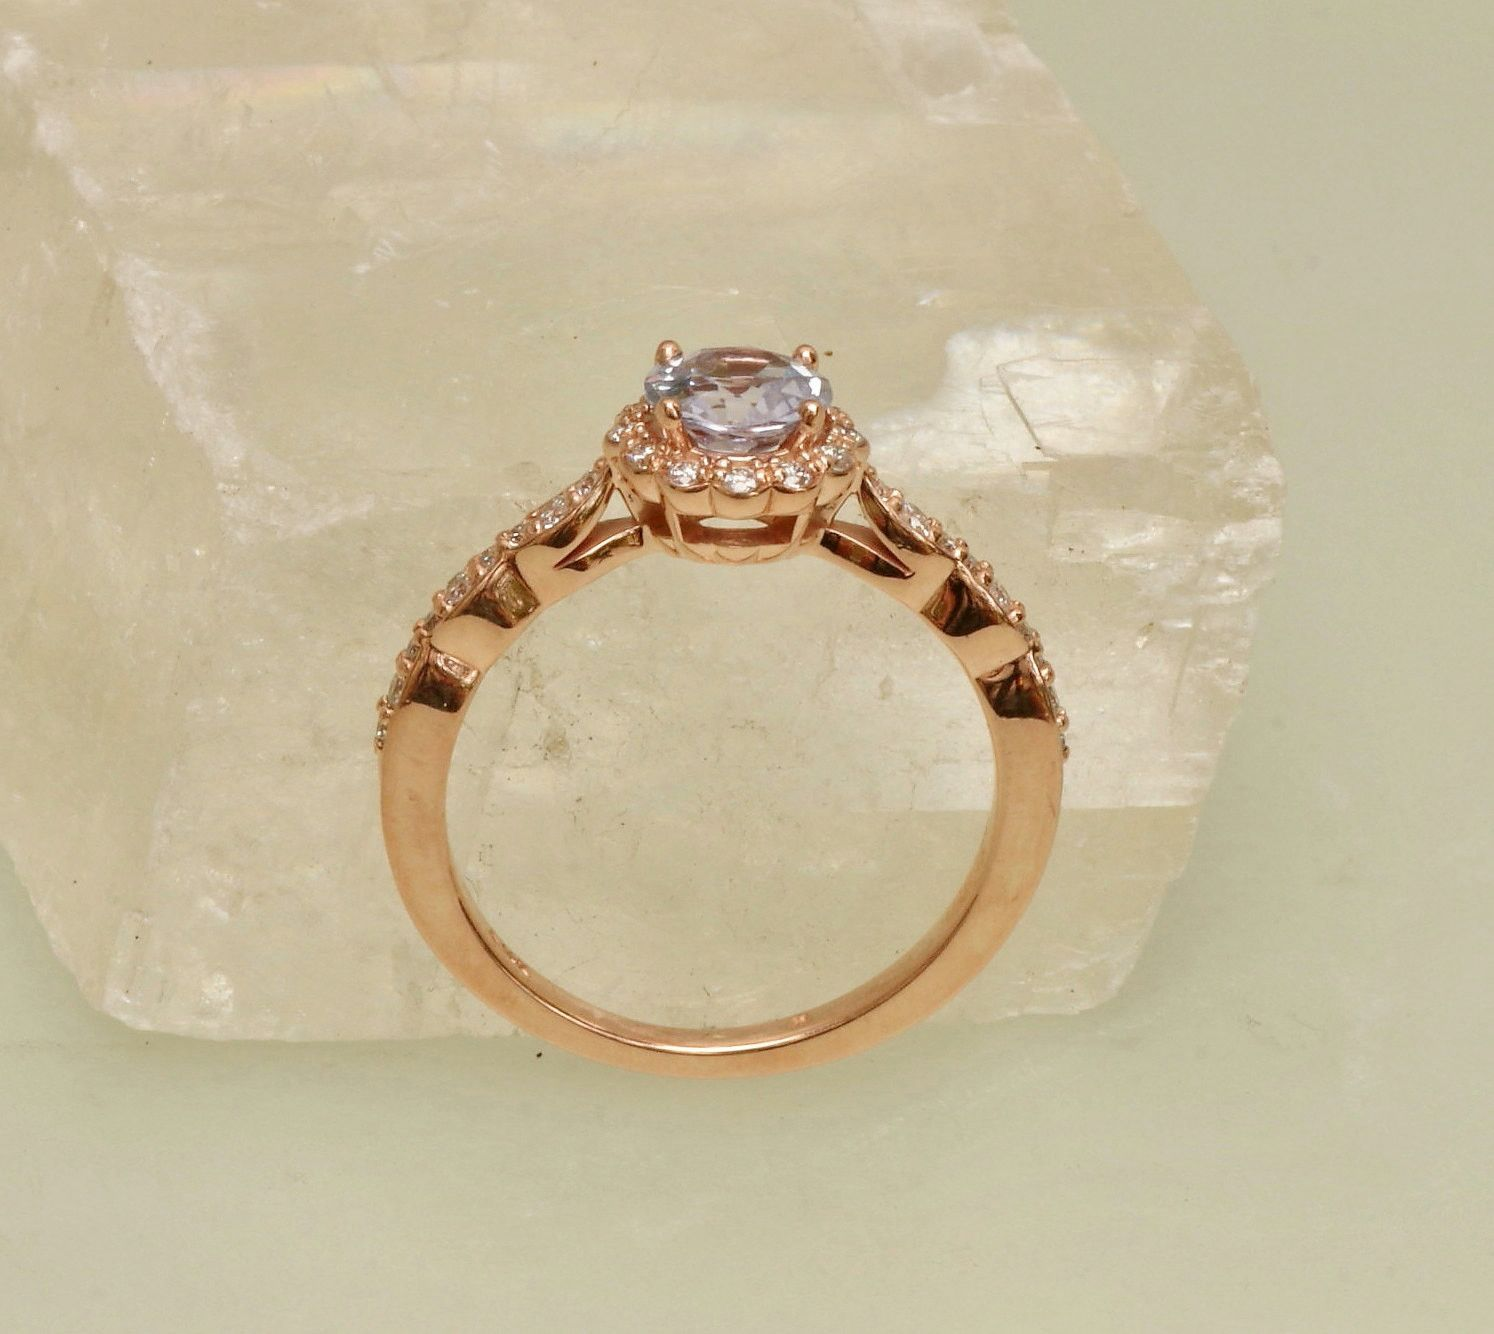 LAVENDER SAPPHIRE ENGAGEMENT RING ROSE GOLD DIAMOND HALO